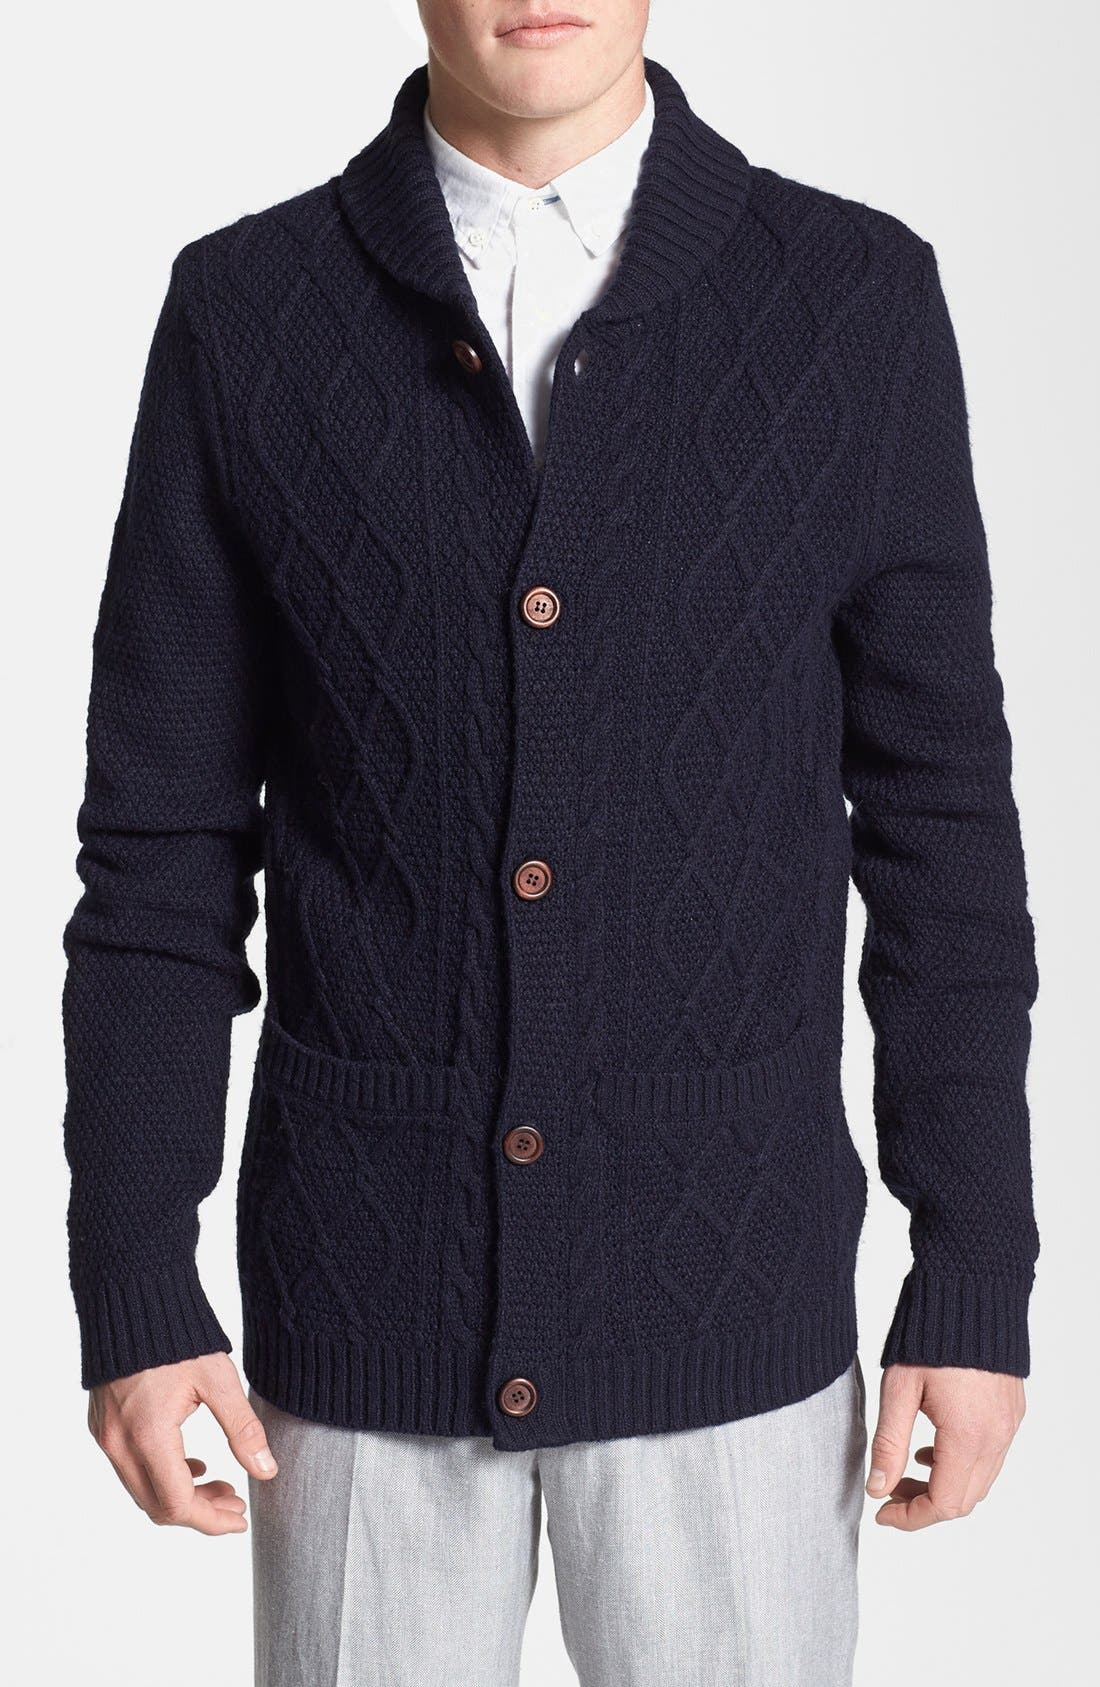 Alternate Image 1 Selected - Topman Cable Knit Shawl Cardigan